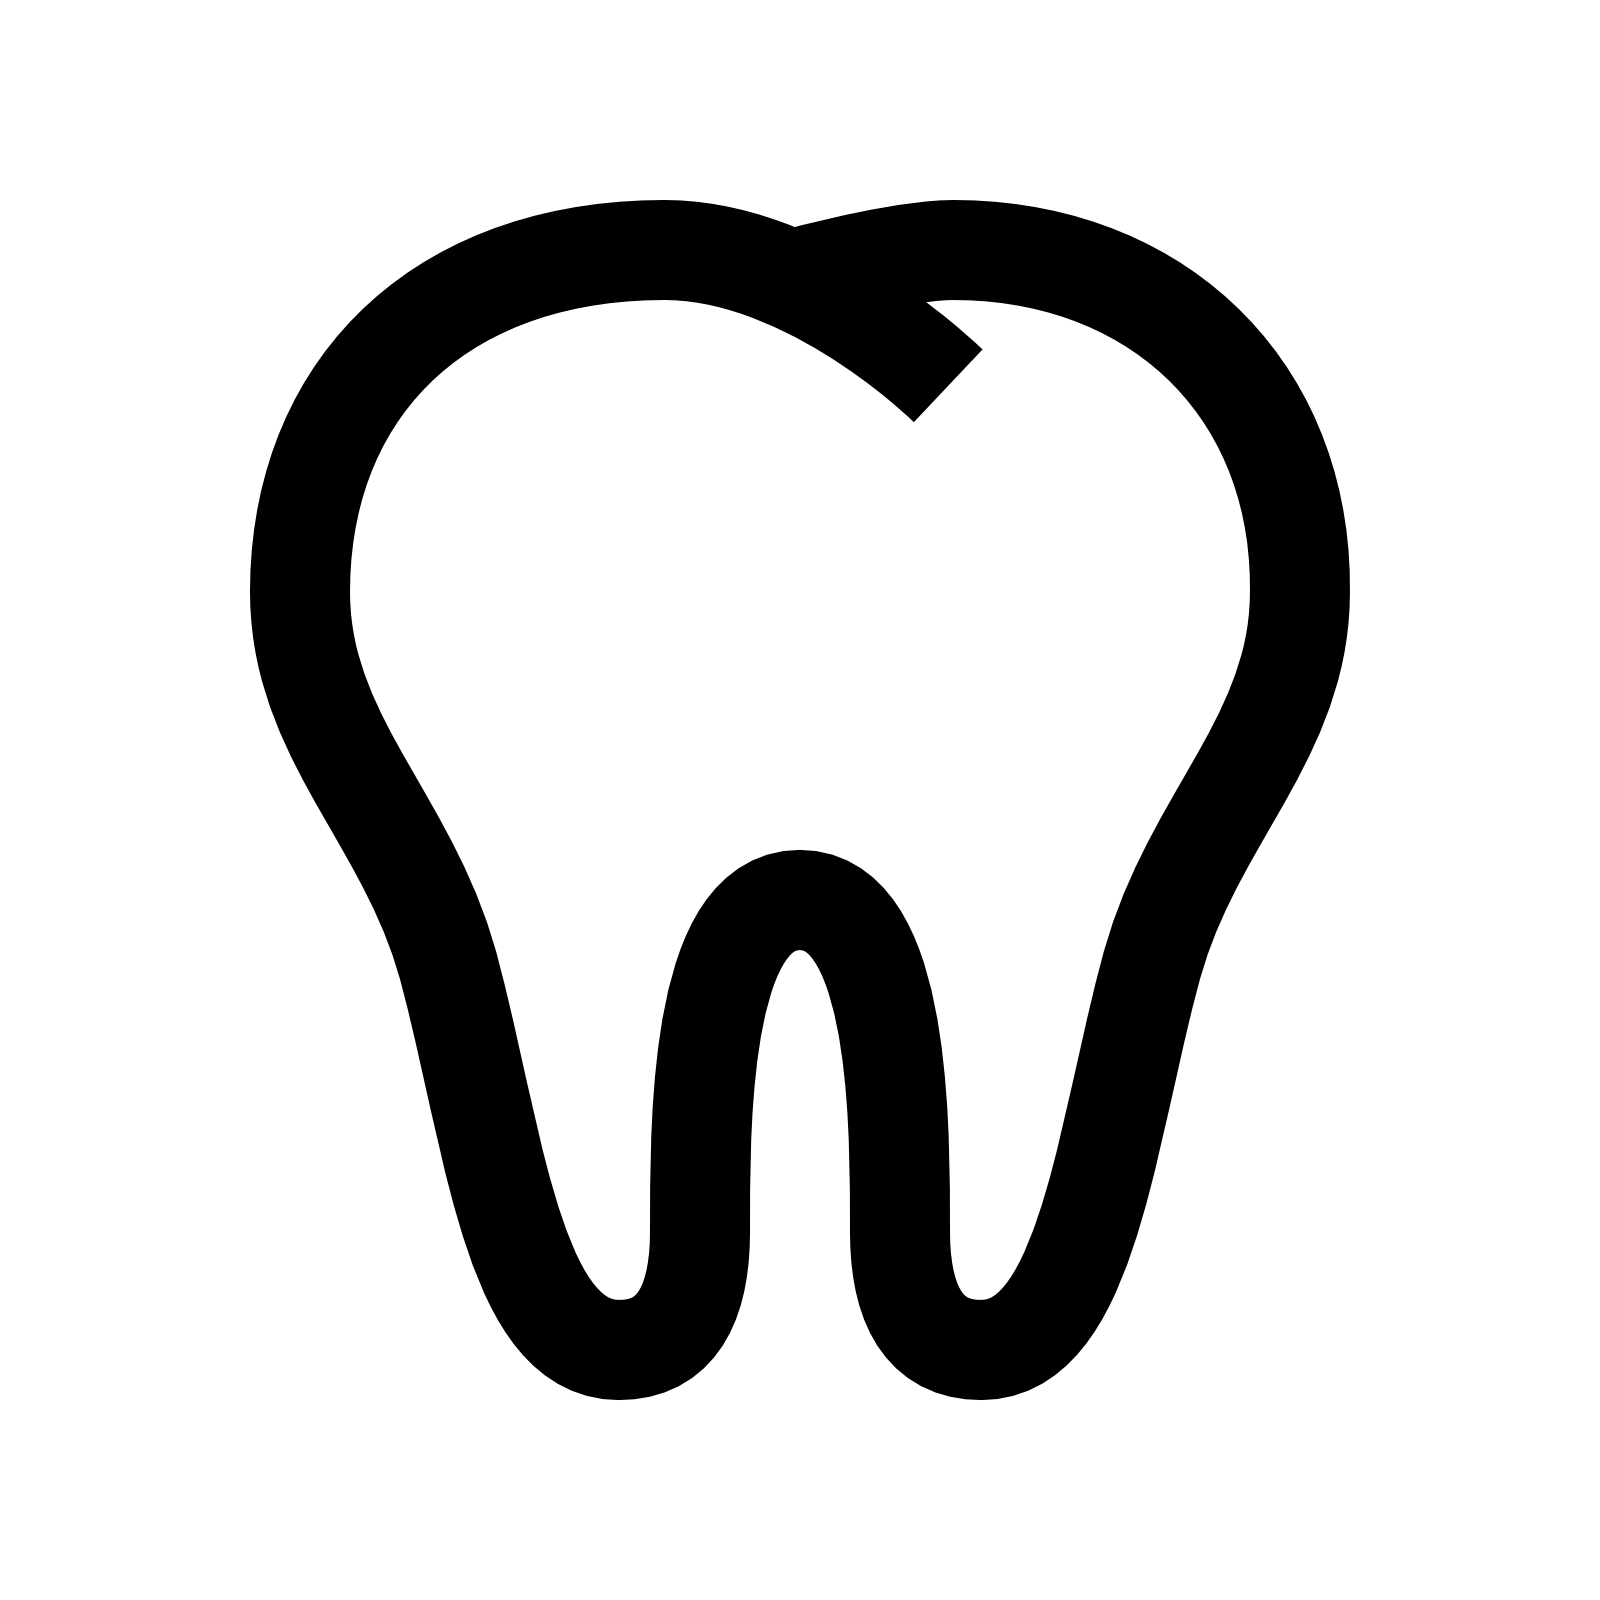 Tooth clipart plain. Library icon free icons